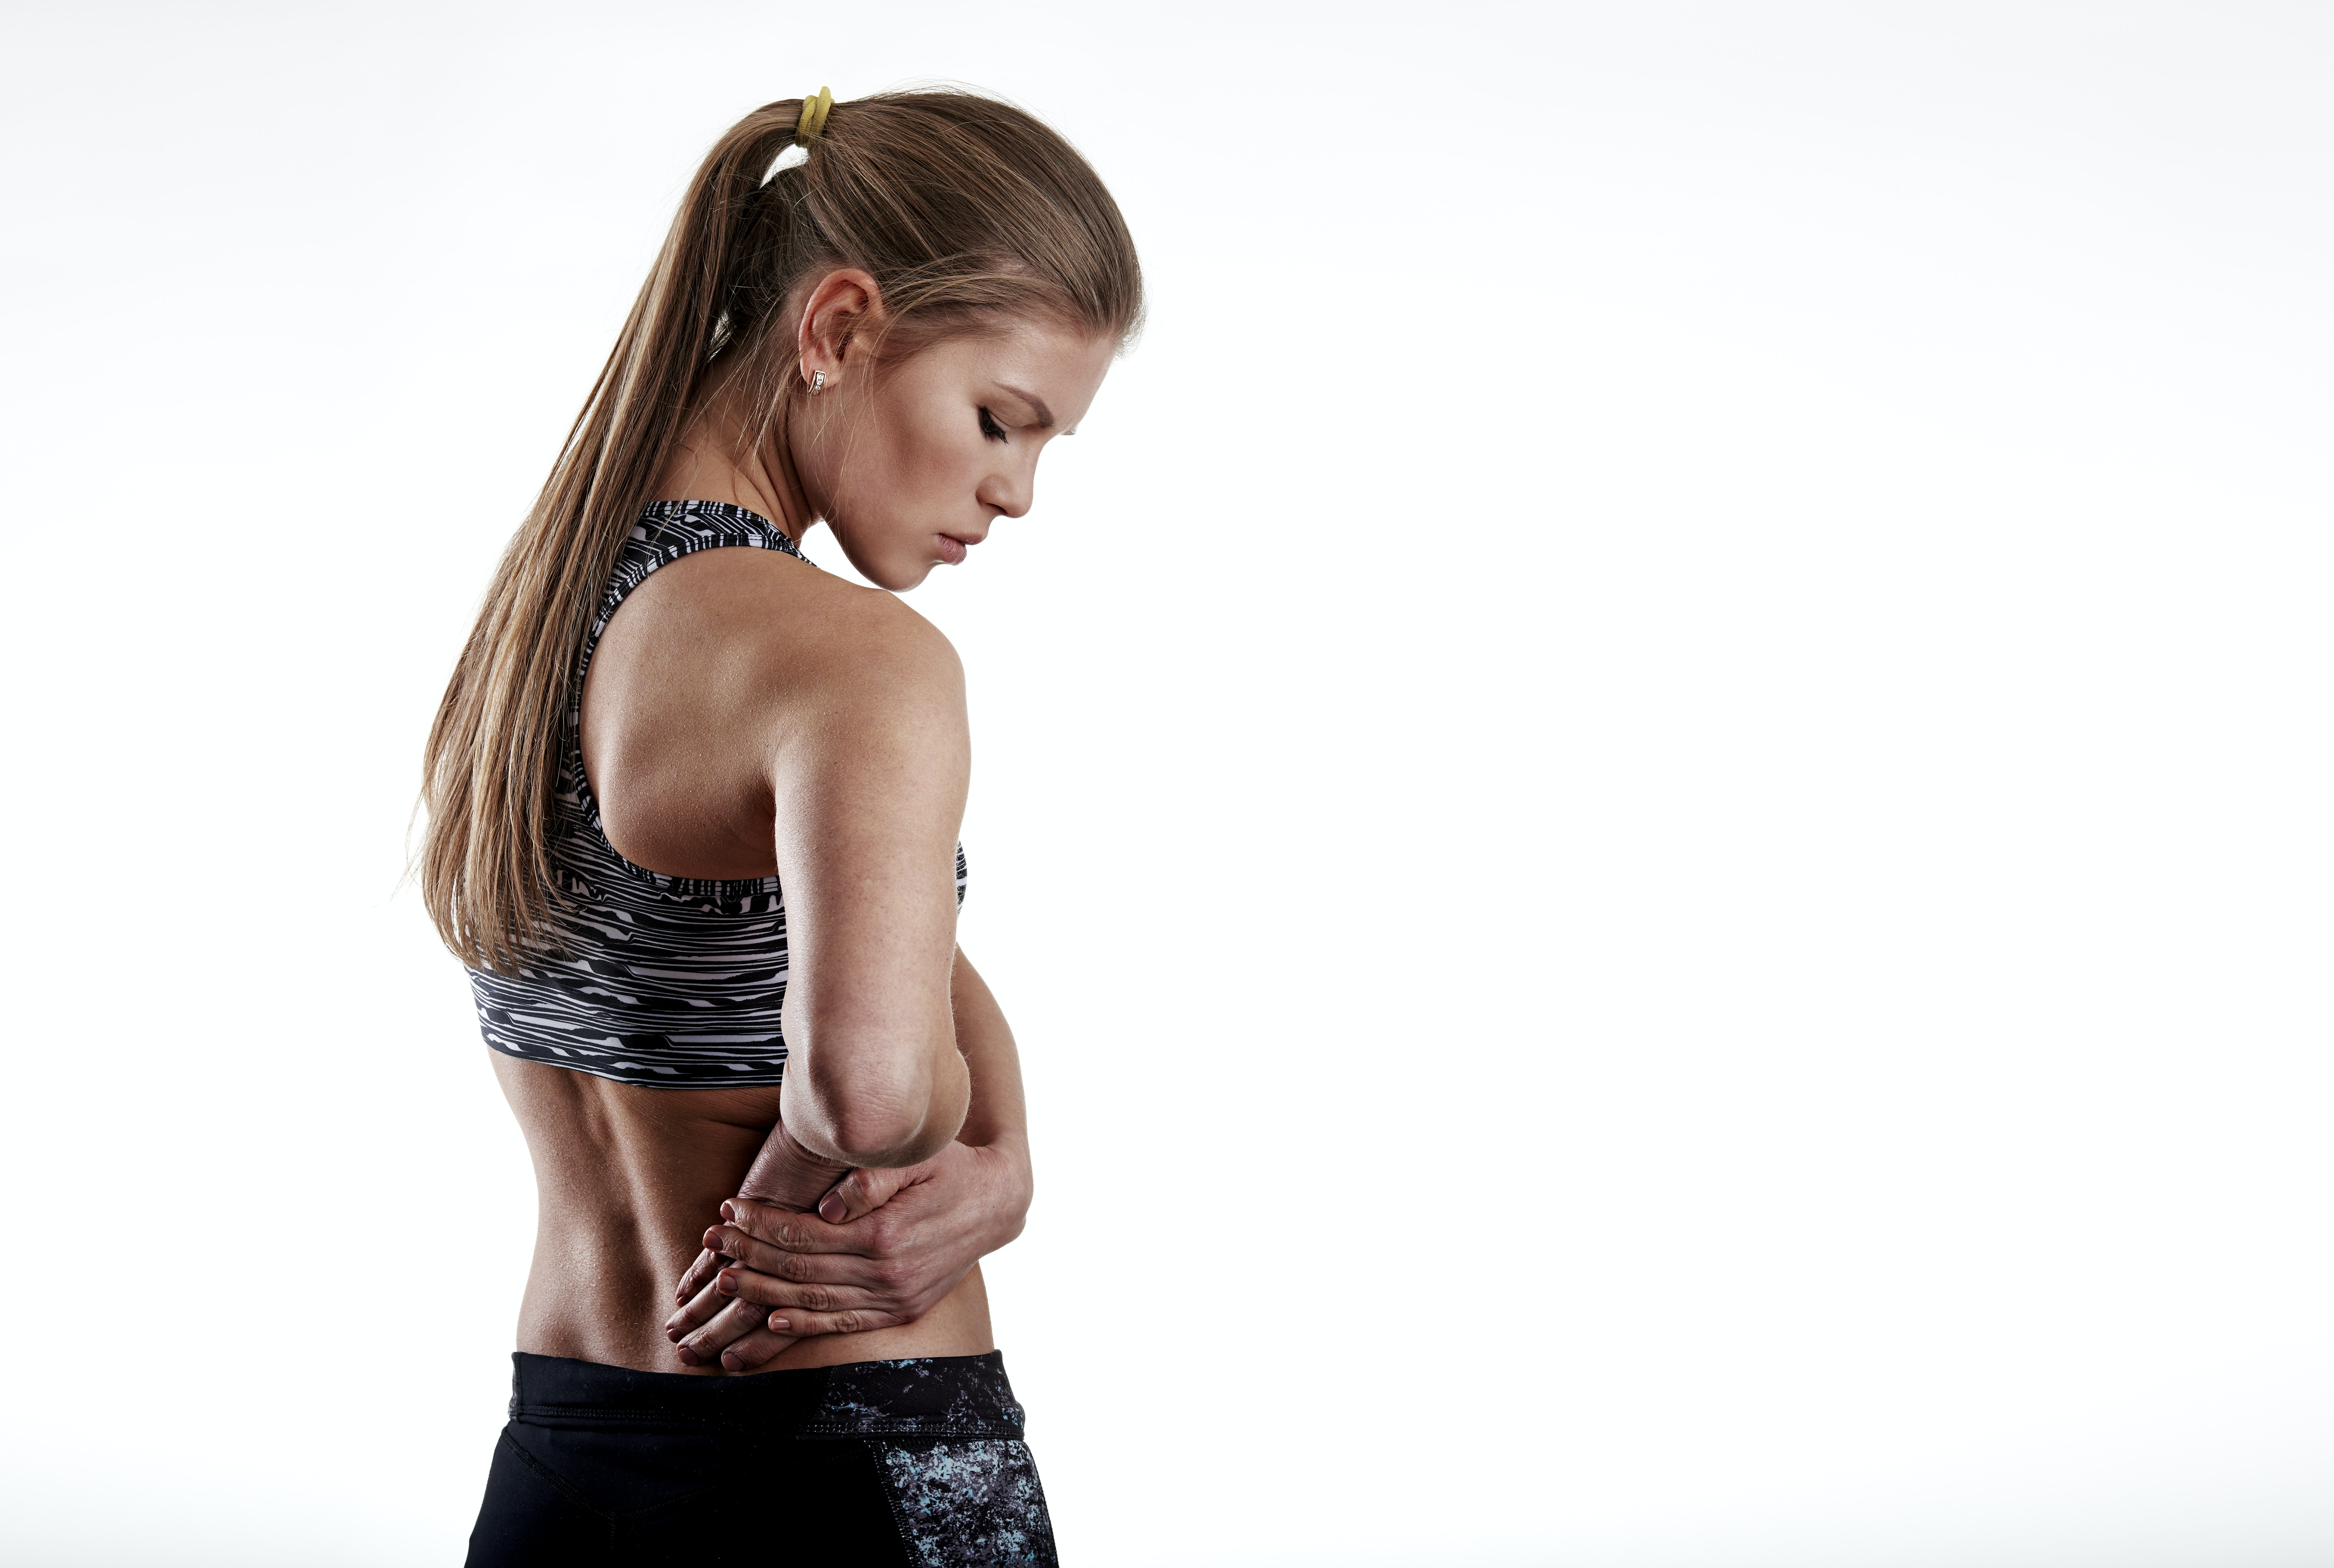 An image depicting a person suffering from hip pain from overuse symptoms